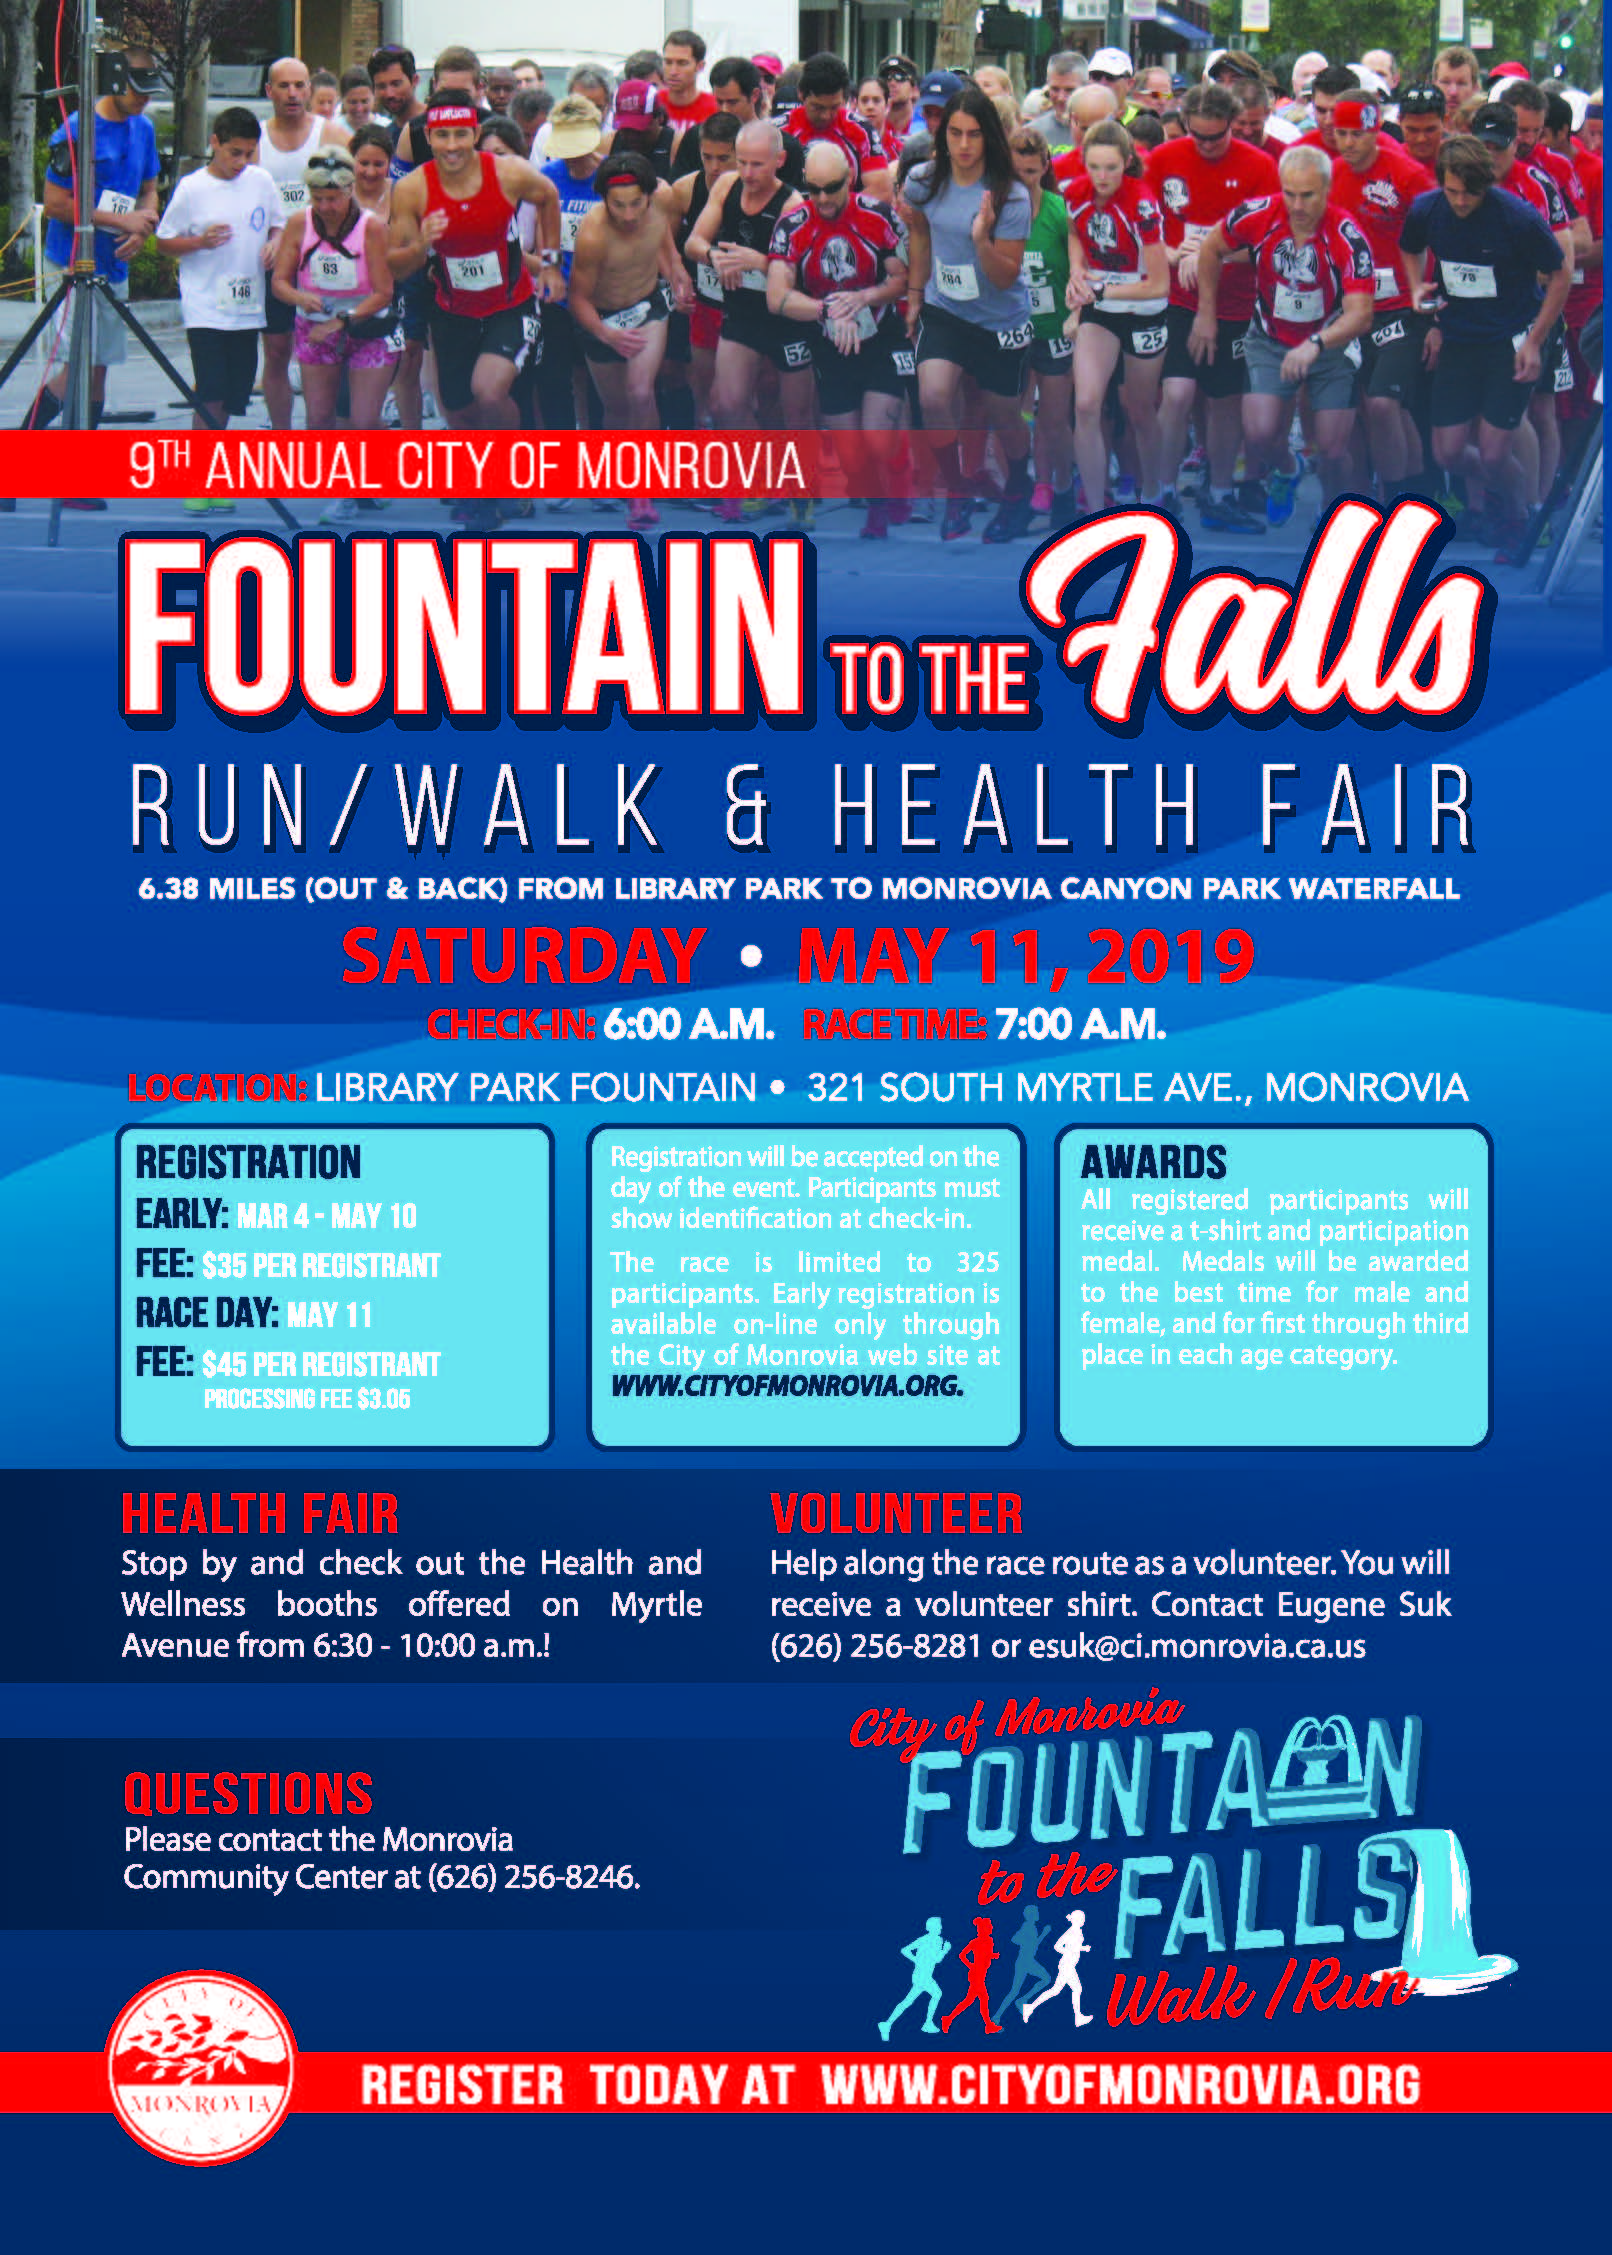 2019 Fountain to the Falls Flyer